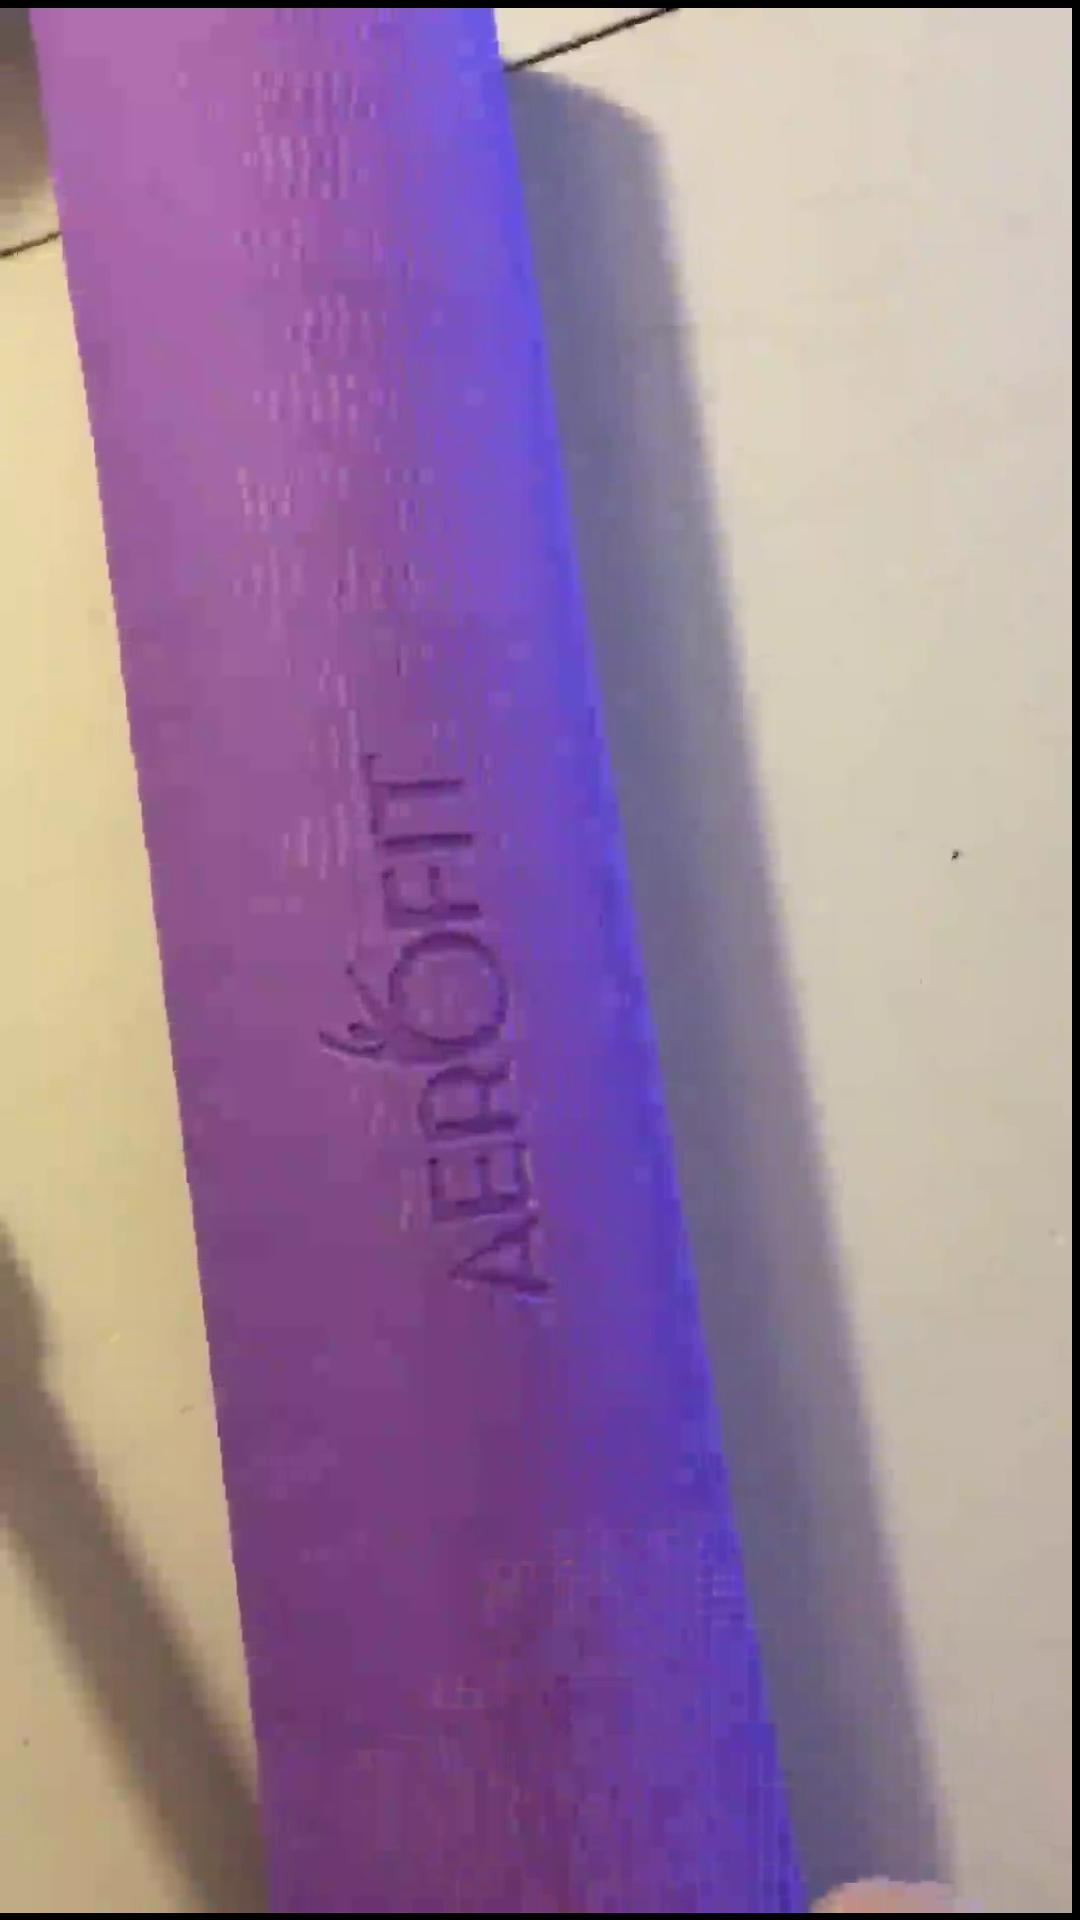 AeroFit Reviewer